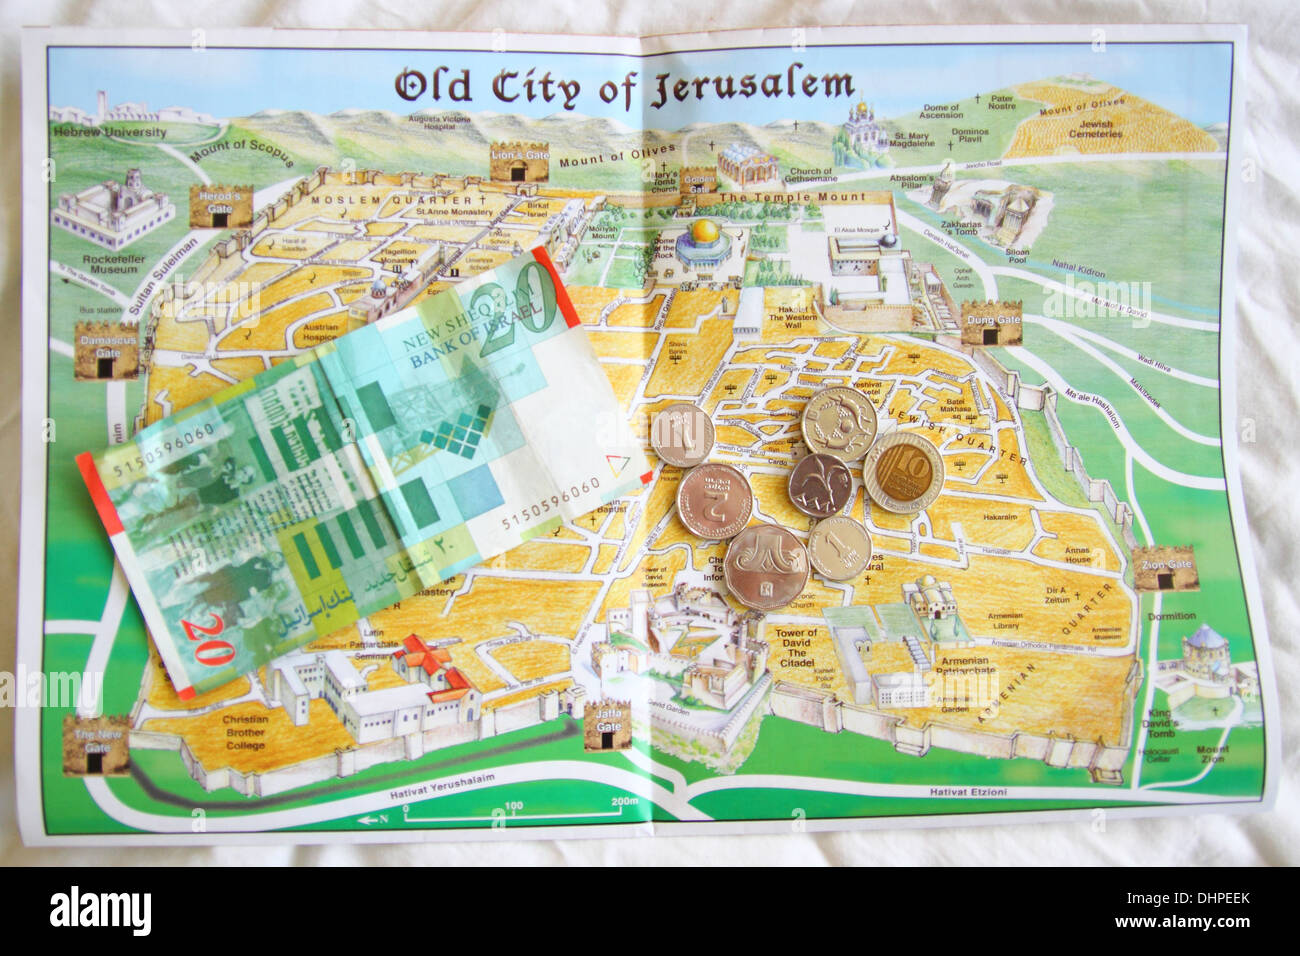 This Is Map Of The Old City Of Jerusalem In Israel With The Ancient Stock Photo Royalty Free